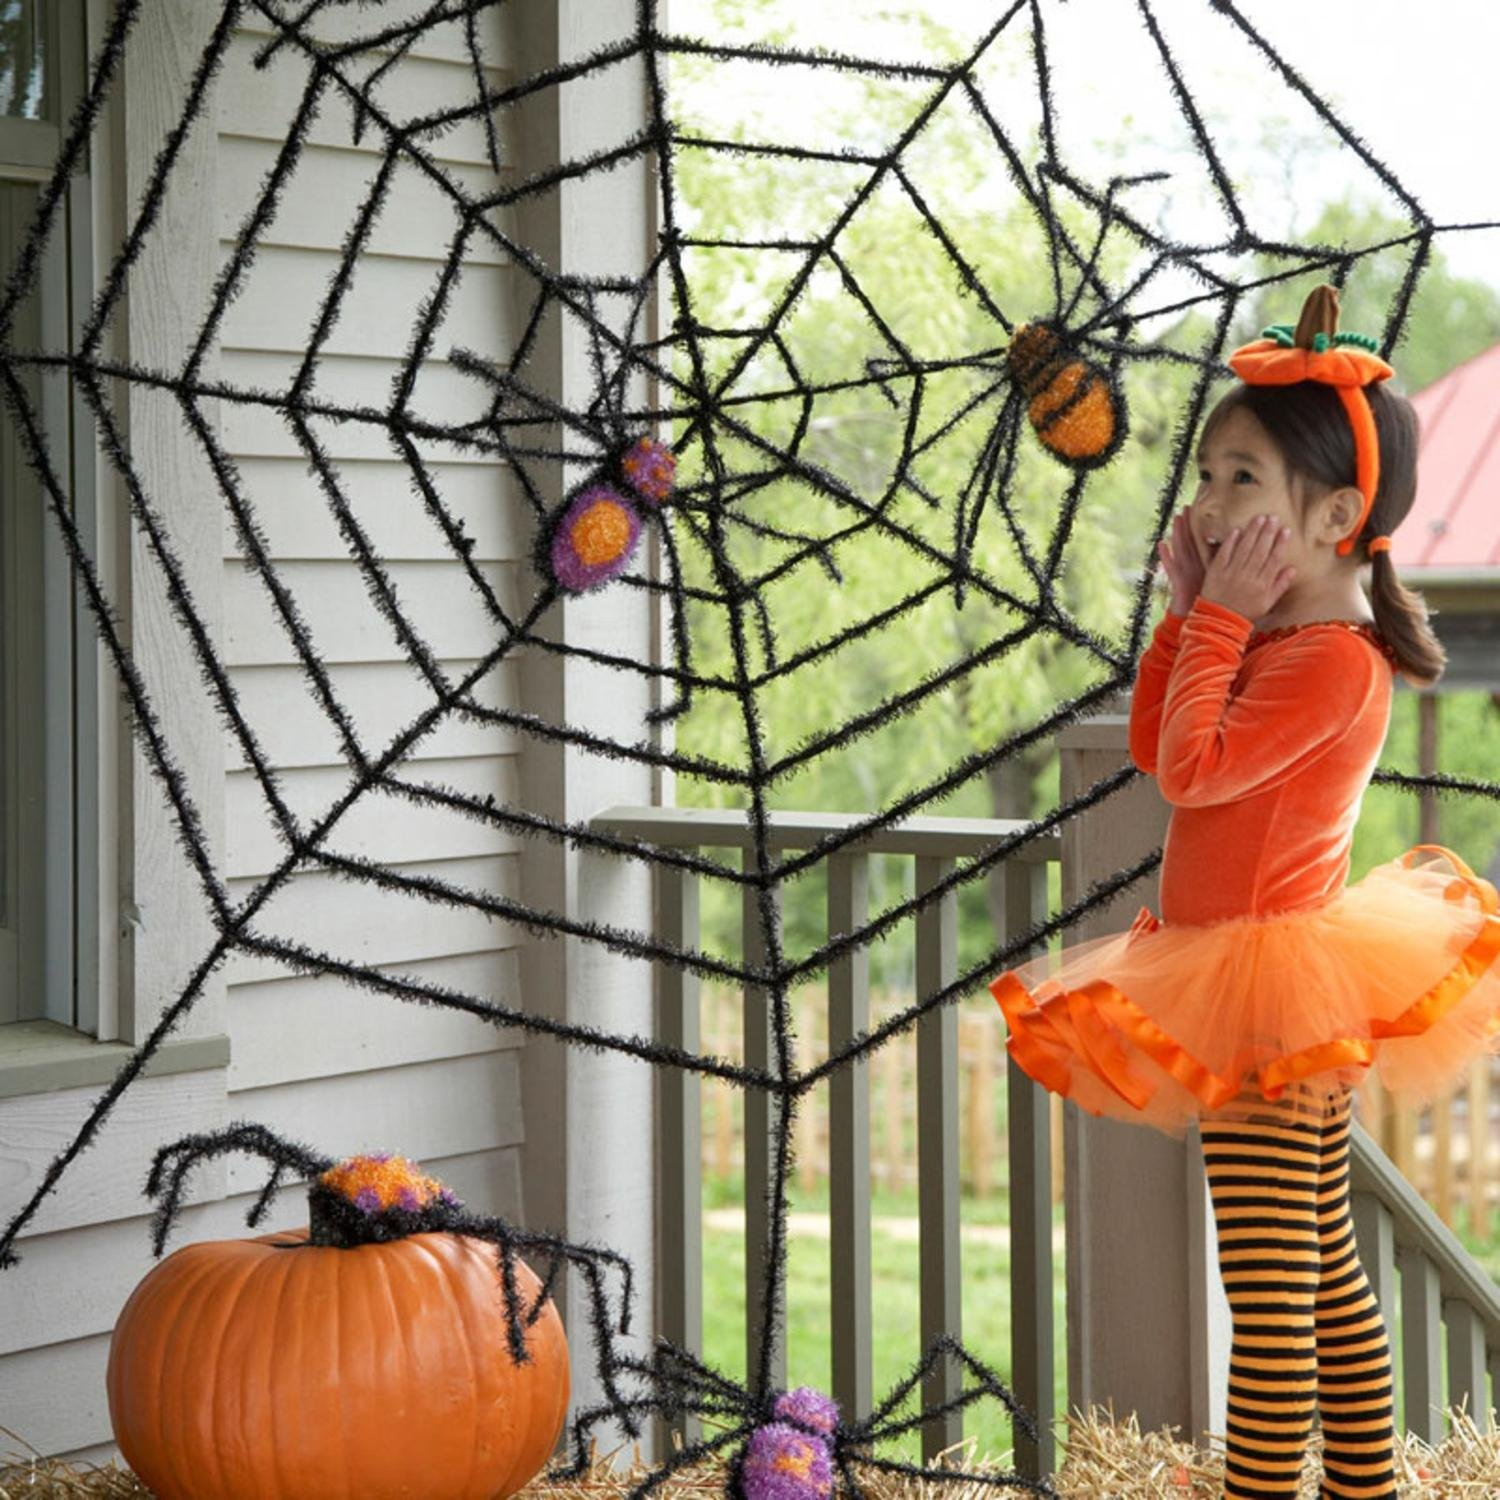 amazoncom giant spider web and giant spiders halloween decoration patio lawn garden - Halloween Spider Decoration